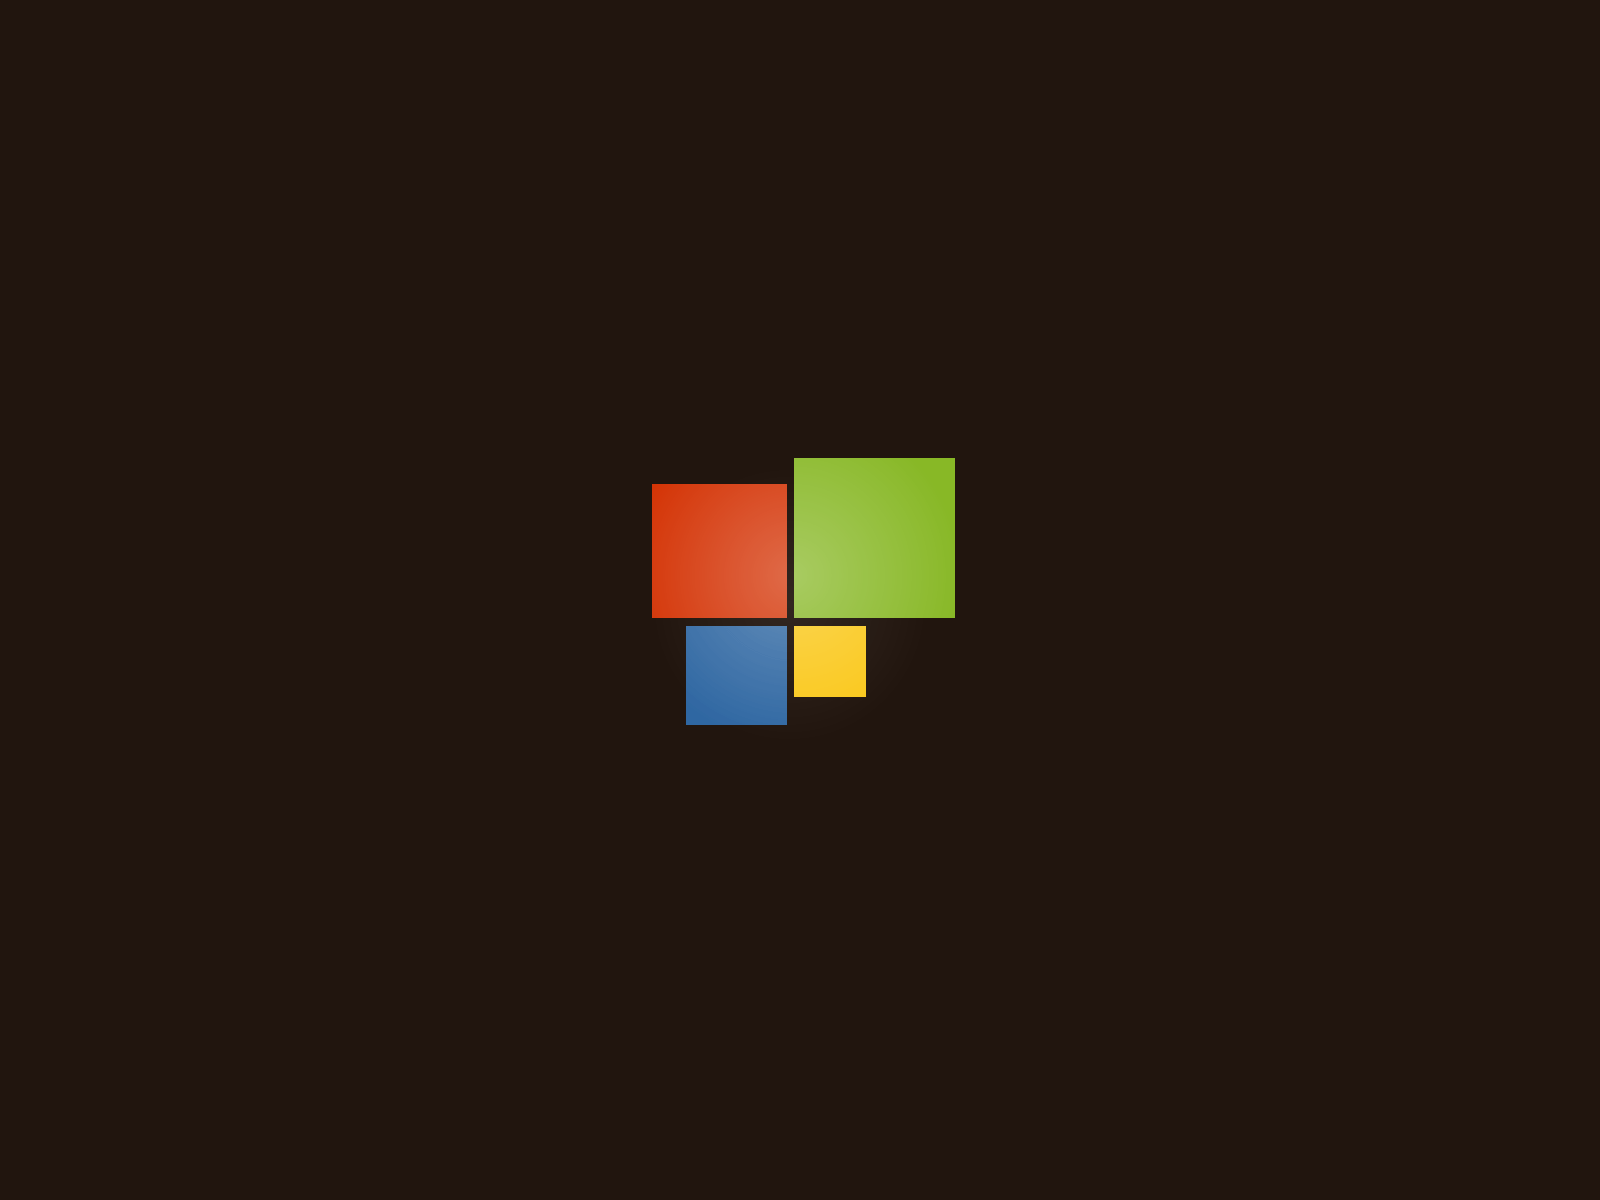 Top 10 Most Wanted Windows 8 Wallpapers 2013 1600x1200